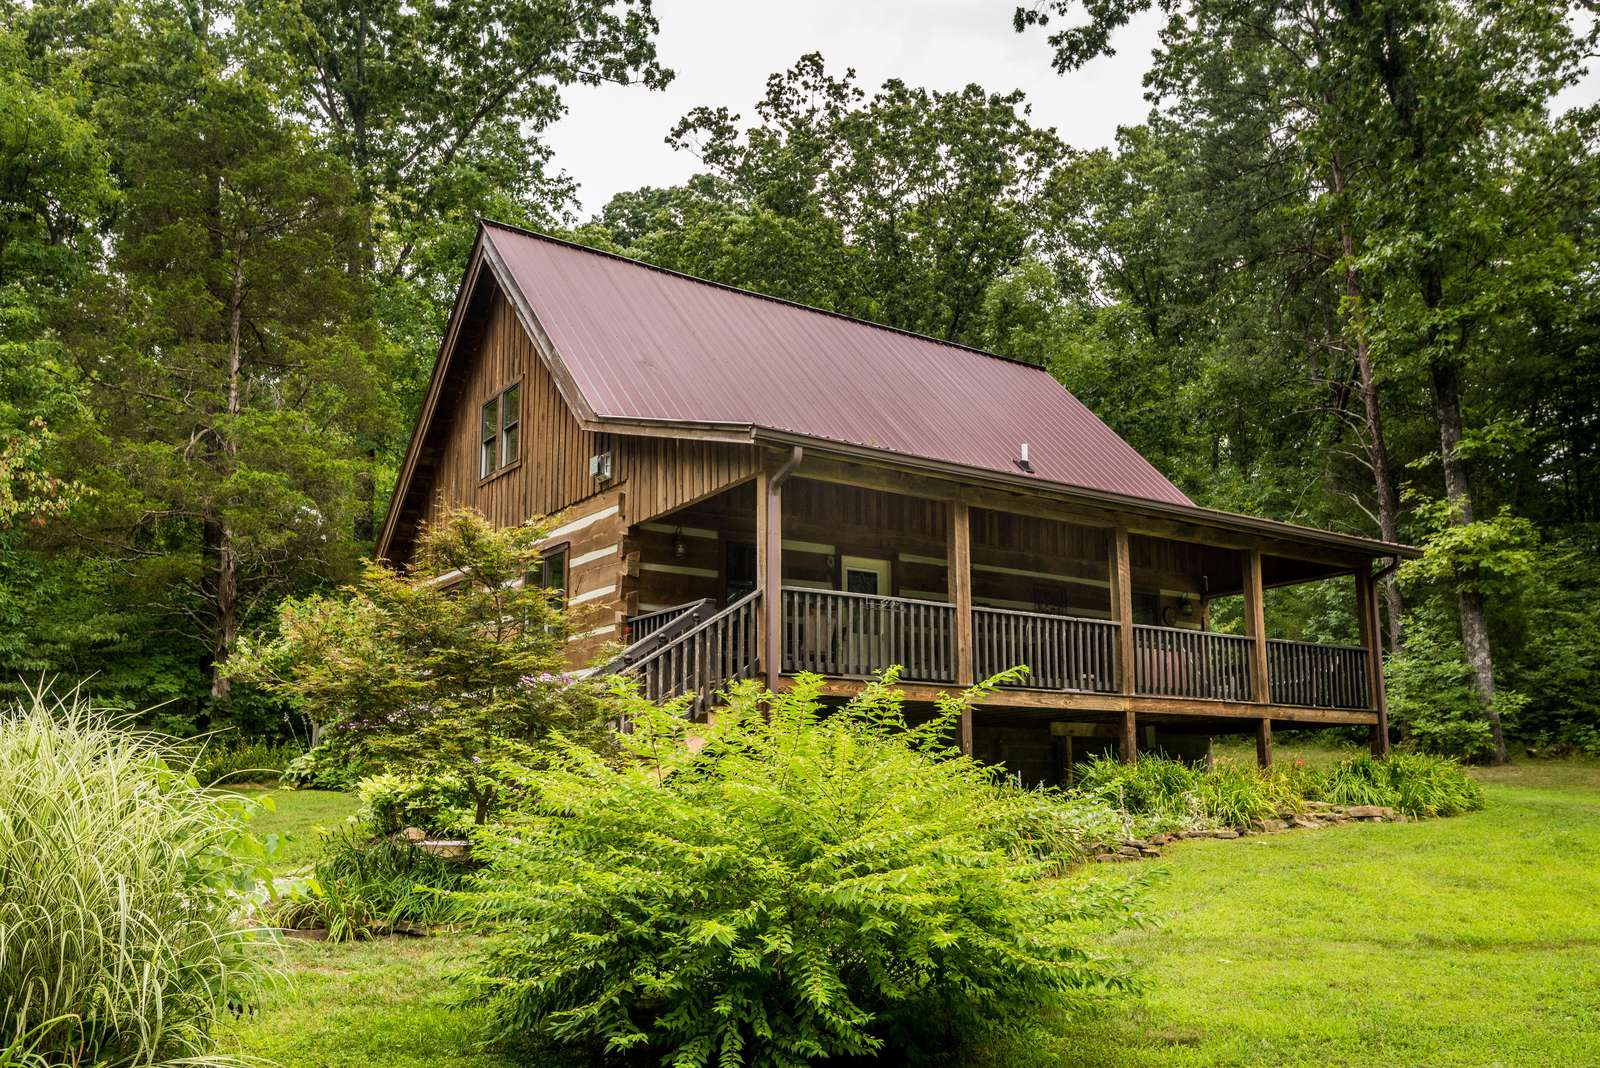 Boondock Vacation Log Cabin - property